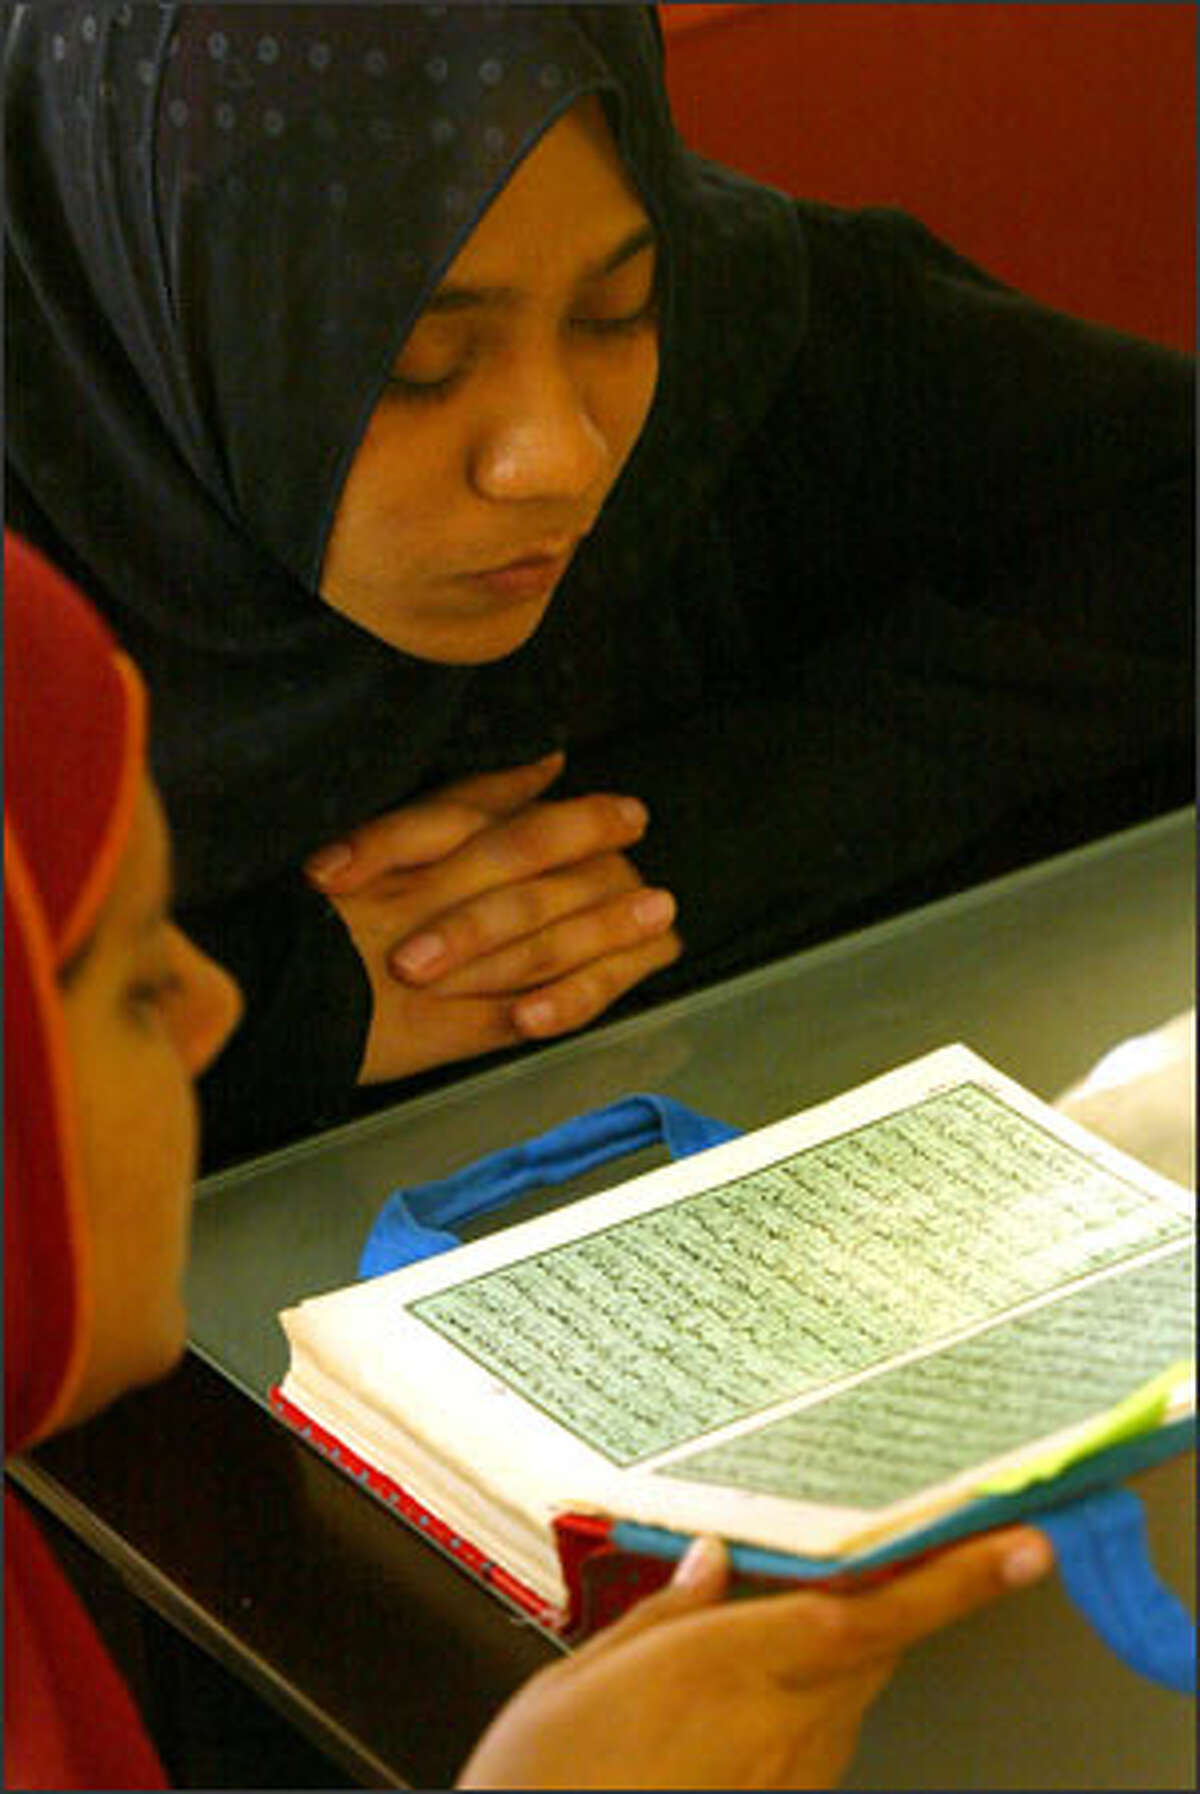 Zakiya Qadir, right, takes Quran lessons at her mosque at Northgate recently. Qadir, a University of Washington student, says for Muslims, high school is